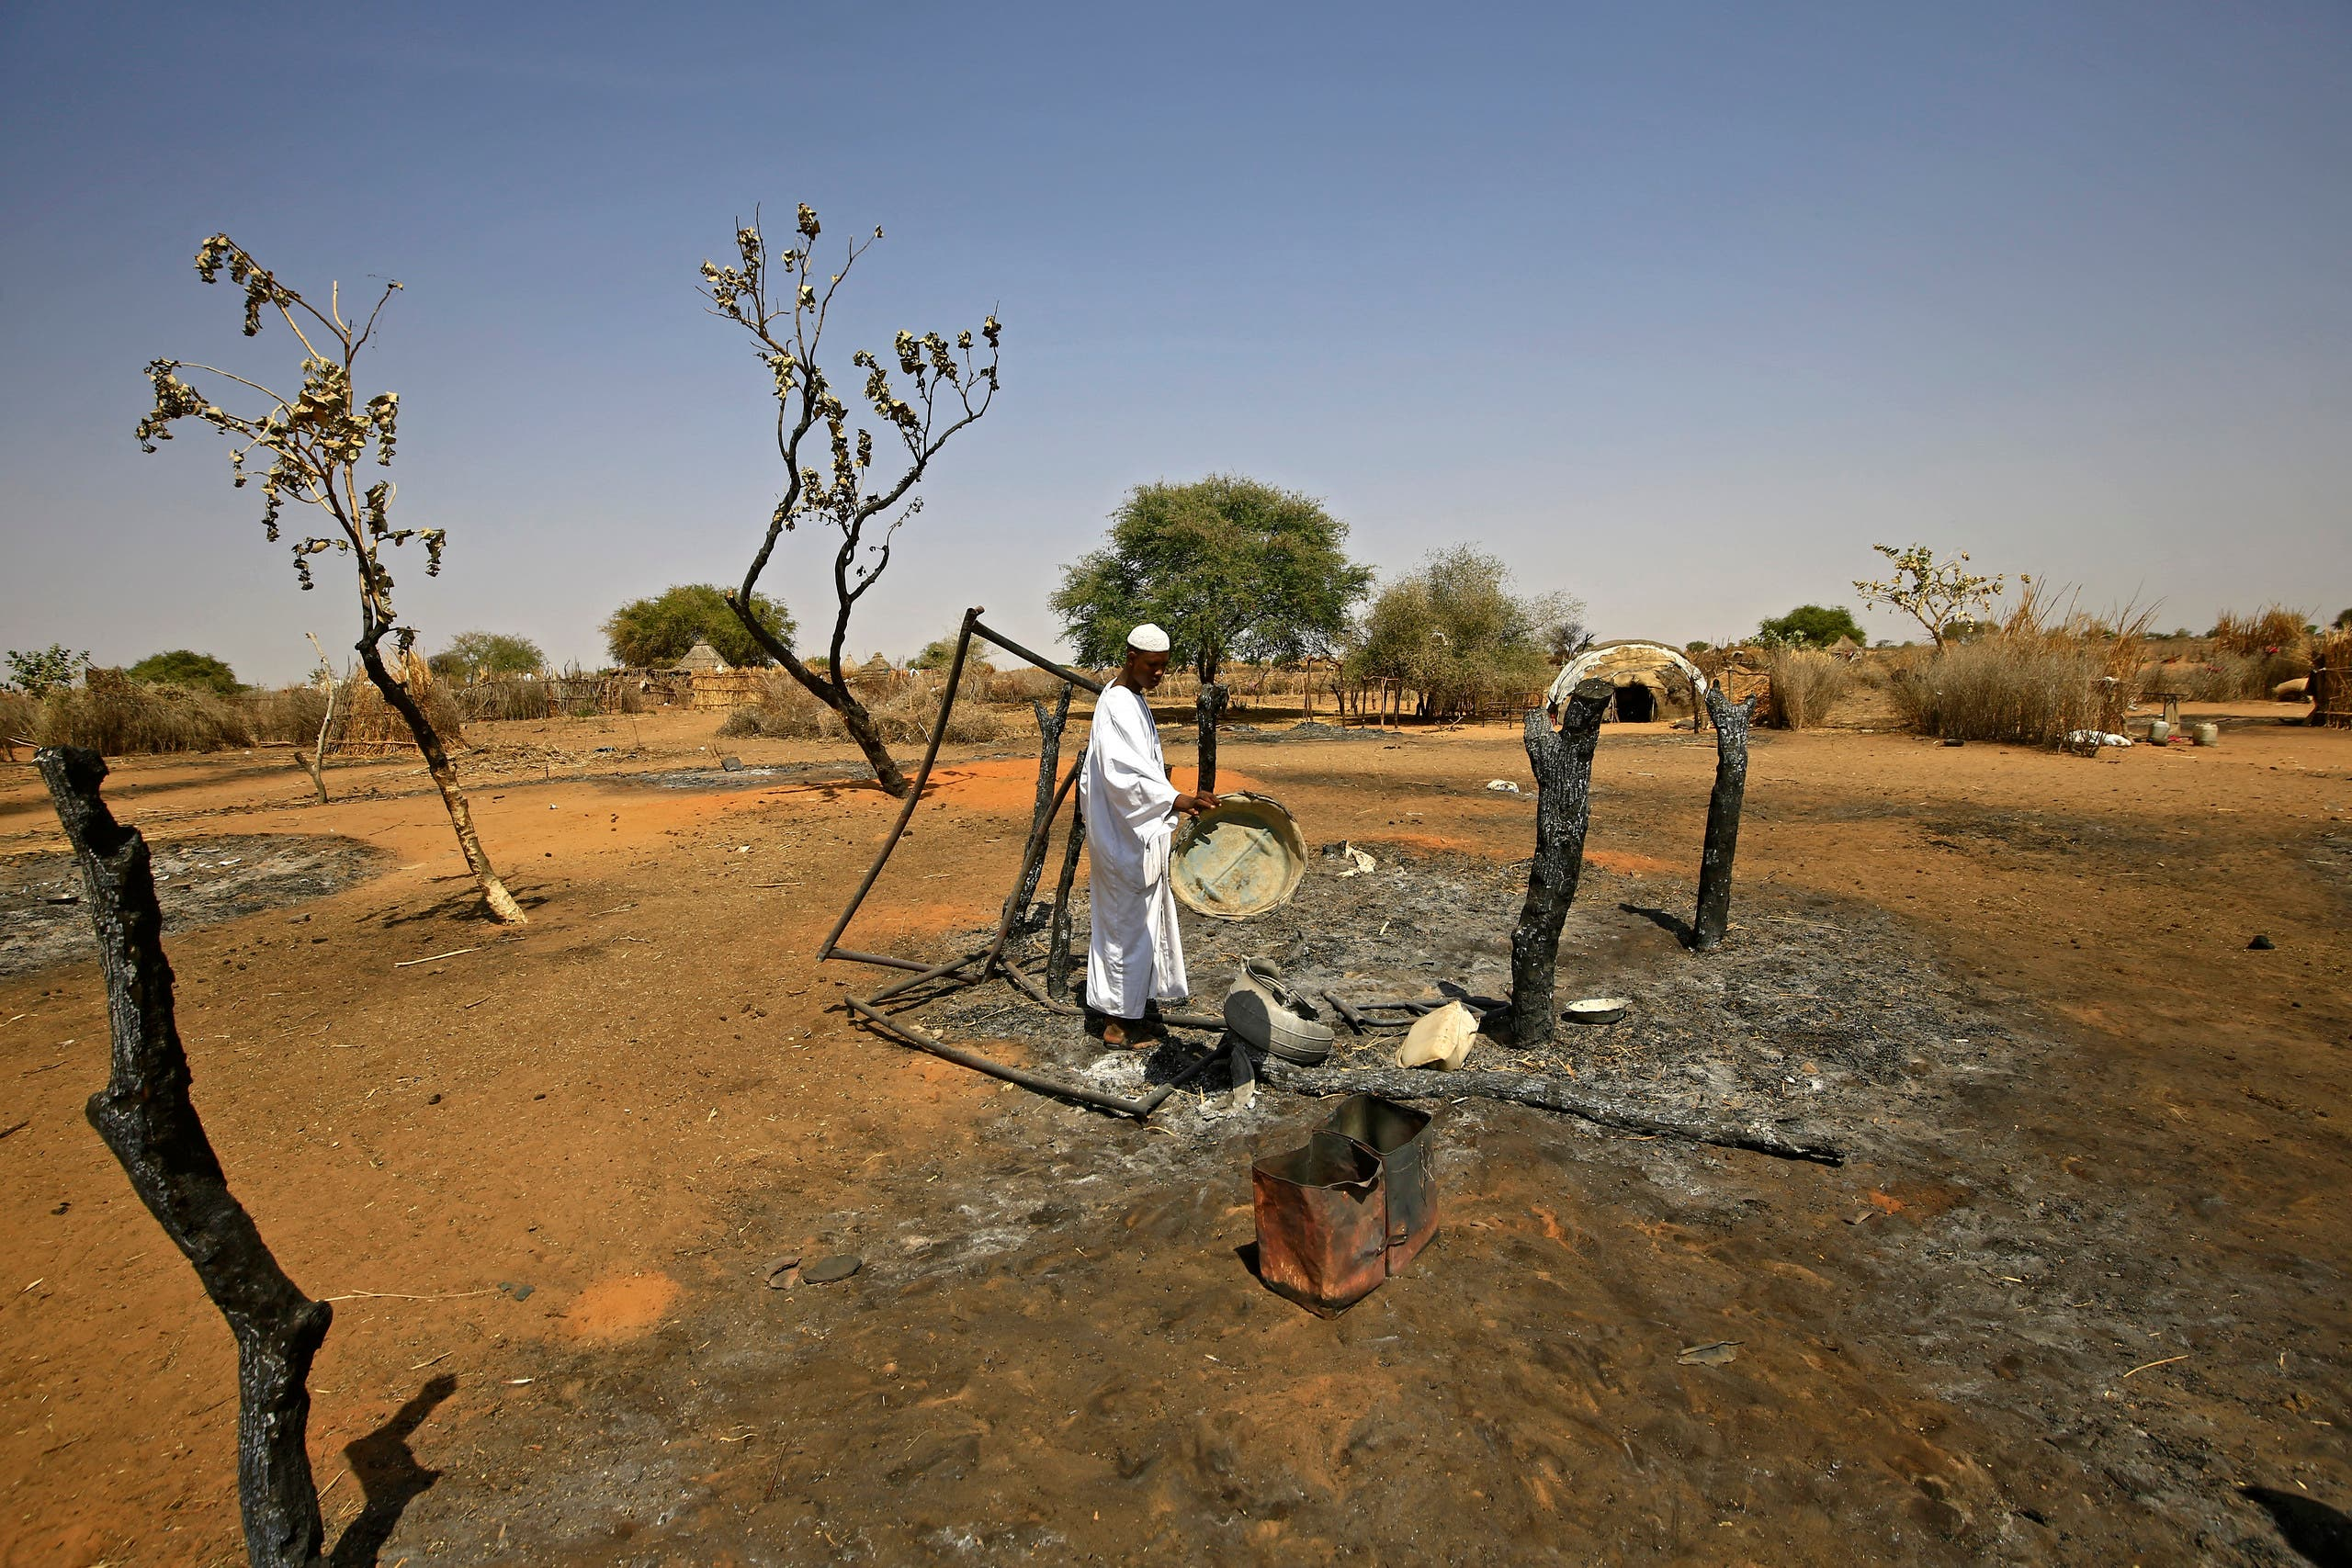 A Sudanese man checks the aftermath of violence in the village of Twail Saadoun, 85 kilometres south of Nyala town, the capital of South Darfur, on February 2, 2021. (AFP)